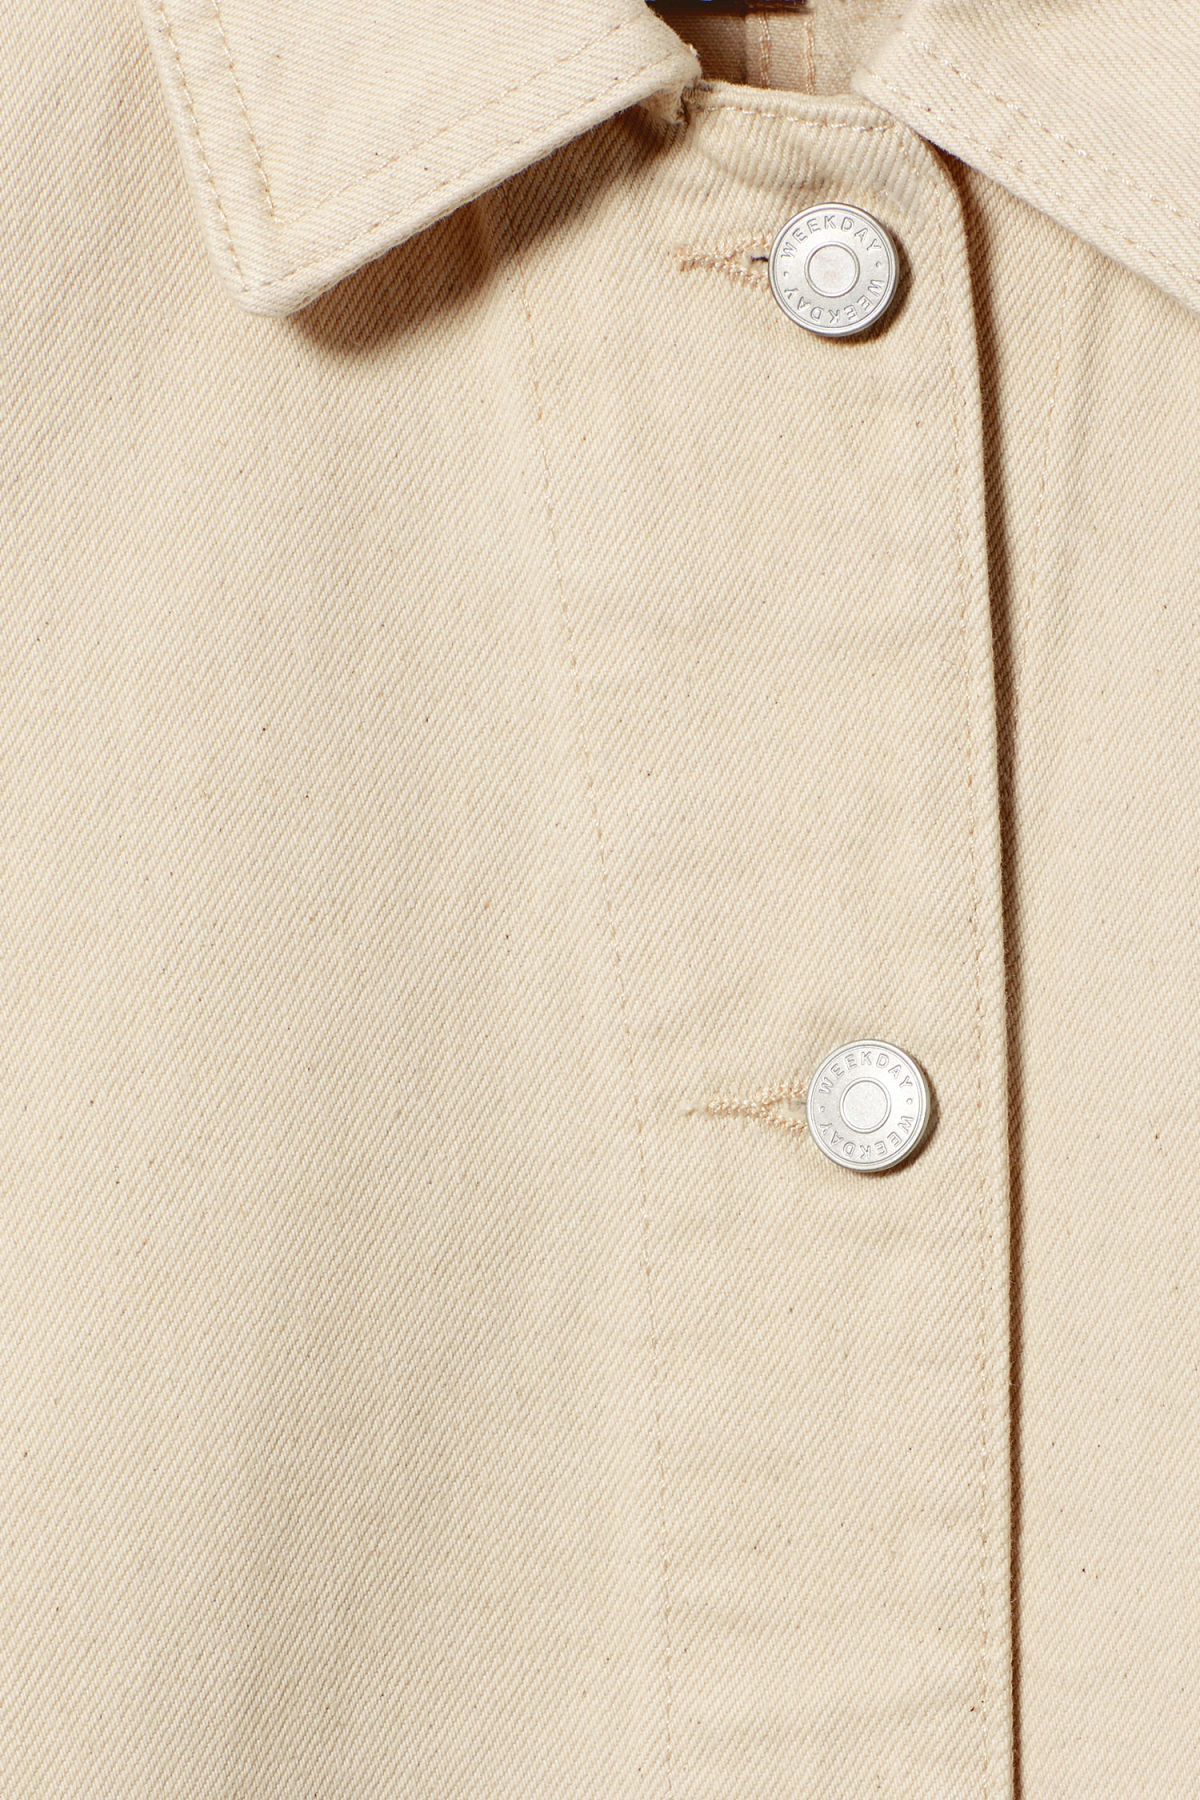 Detailed image of Weekday dual ecru denim jacket  in beige